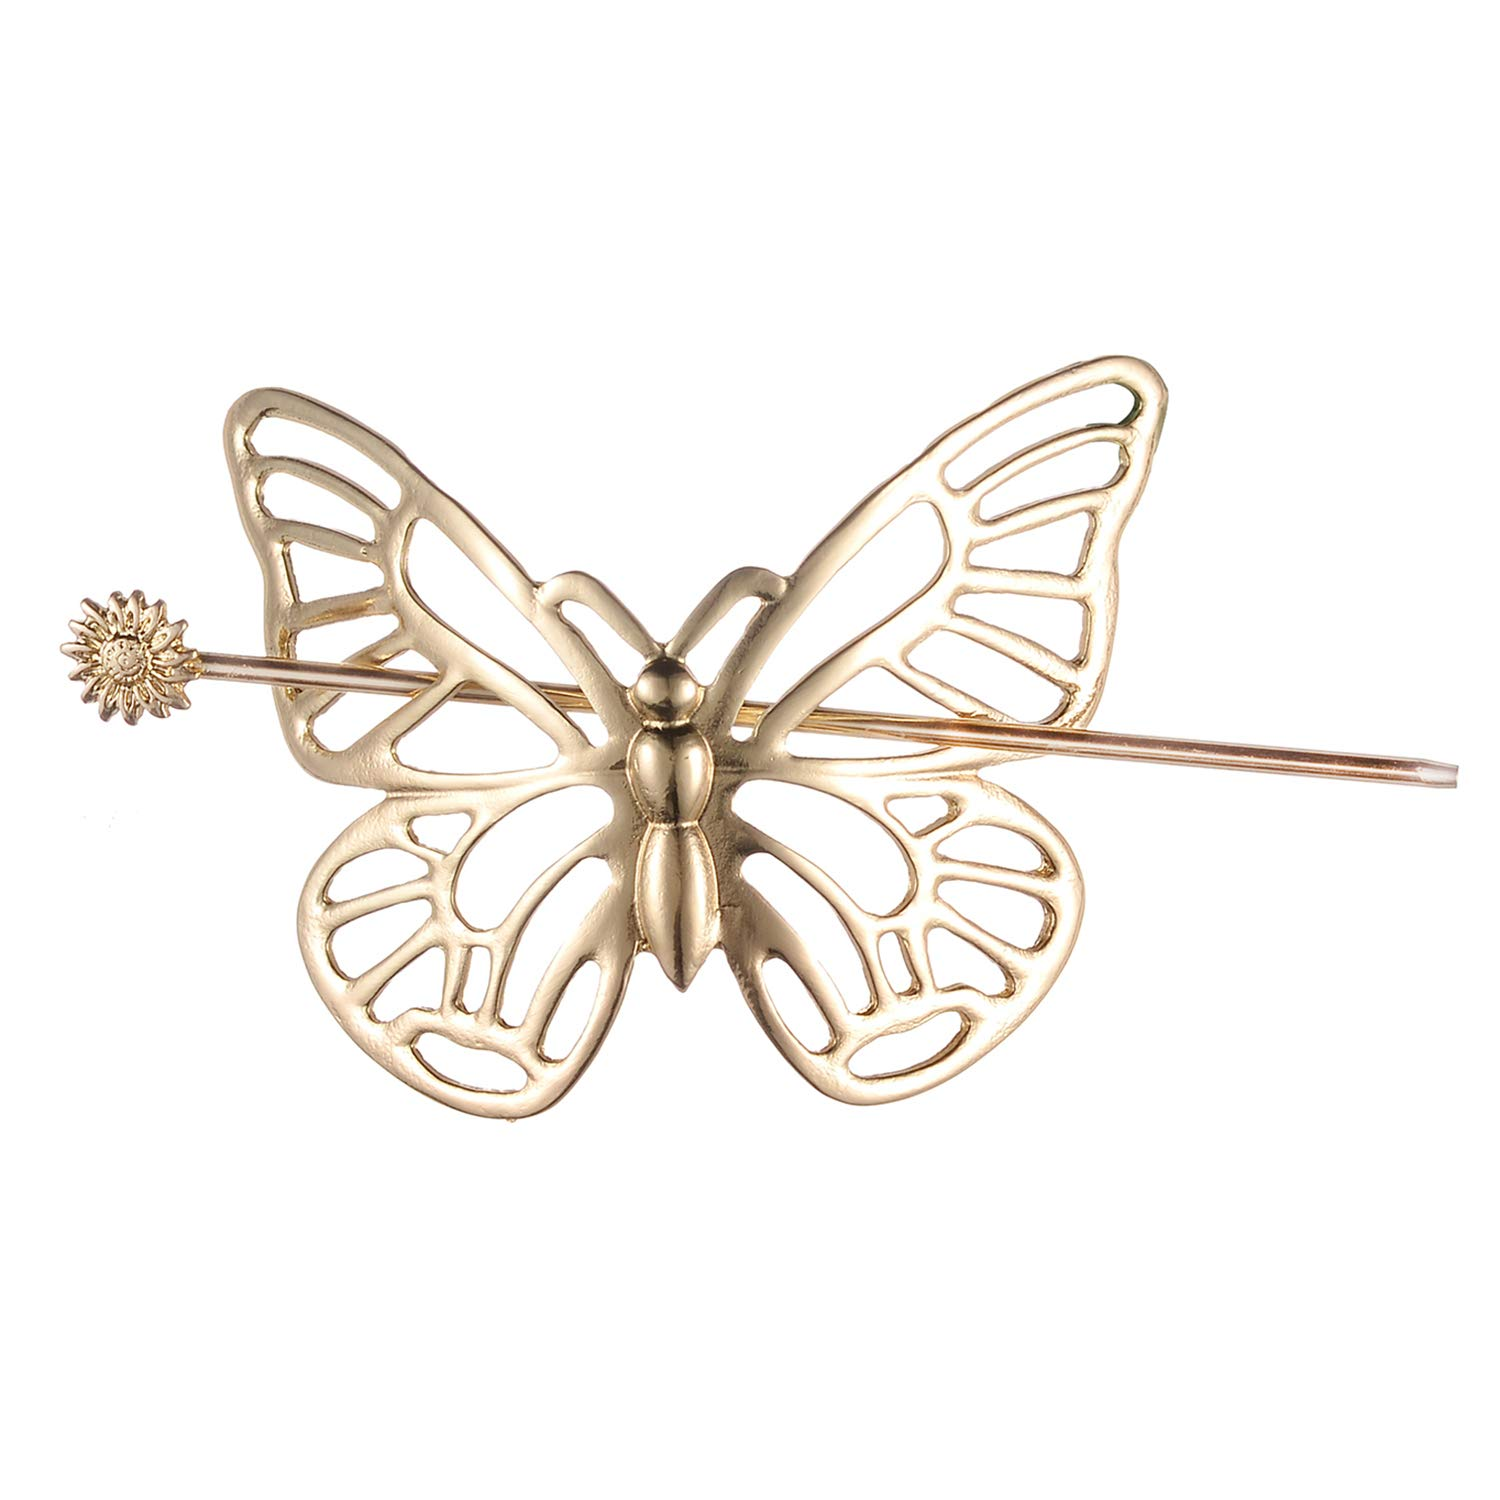 NEW Global Gold Tone Faux Wood Barrette Hair Styling Clip